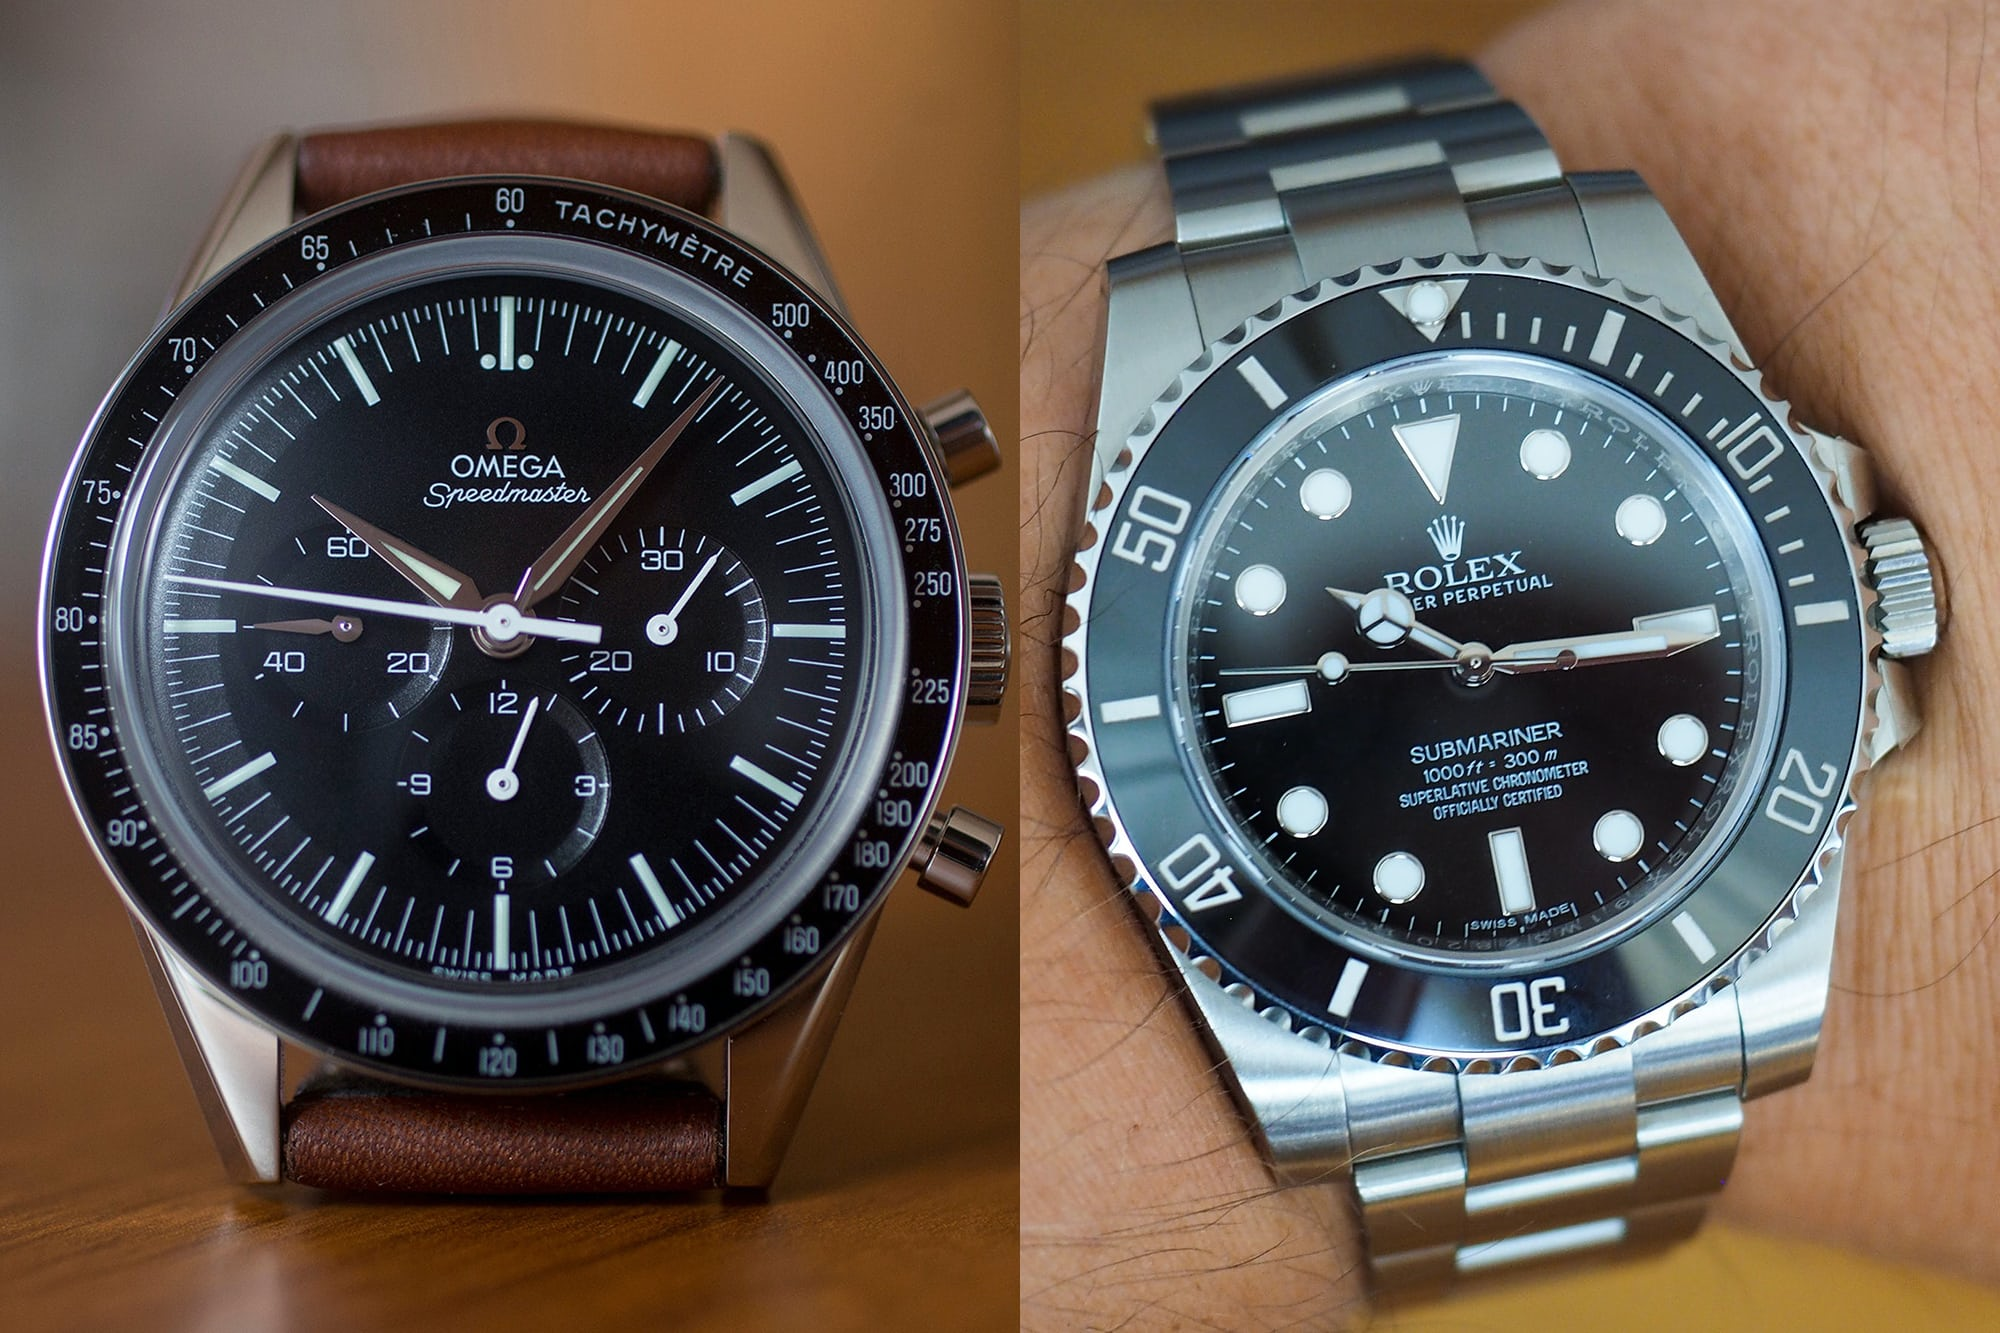 Year In Review: The Top 25 Most Popular HODINKEE Posts Of 2017 Year In Review: The Top 25 Most Popular HODINKEE Posts Of 2017 chrono vs diver hero